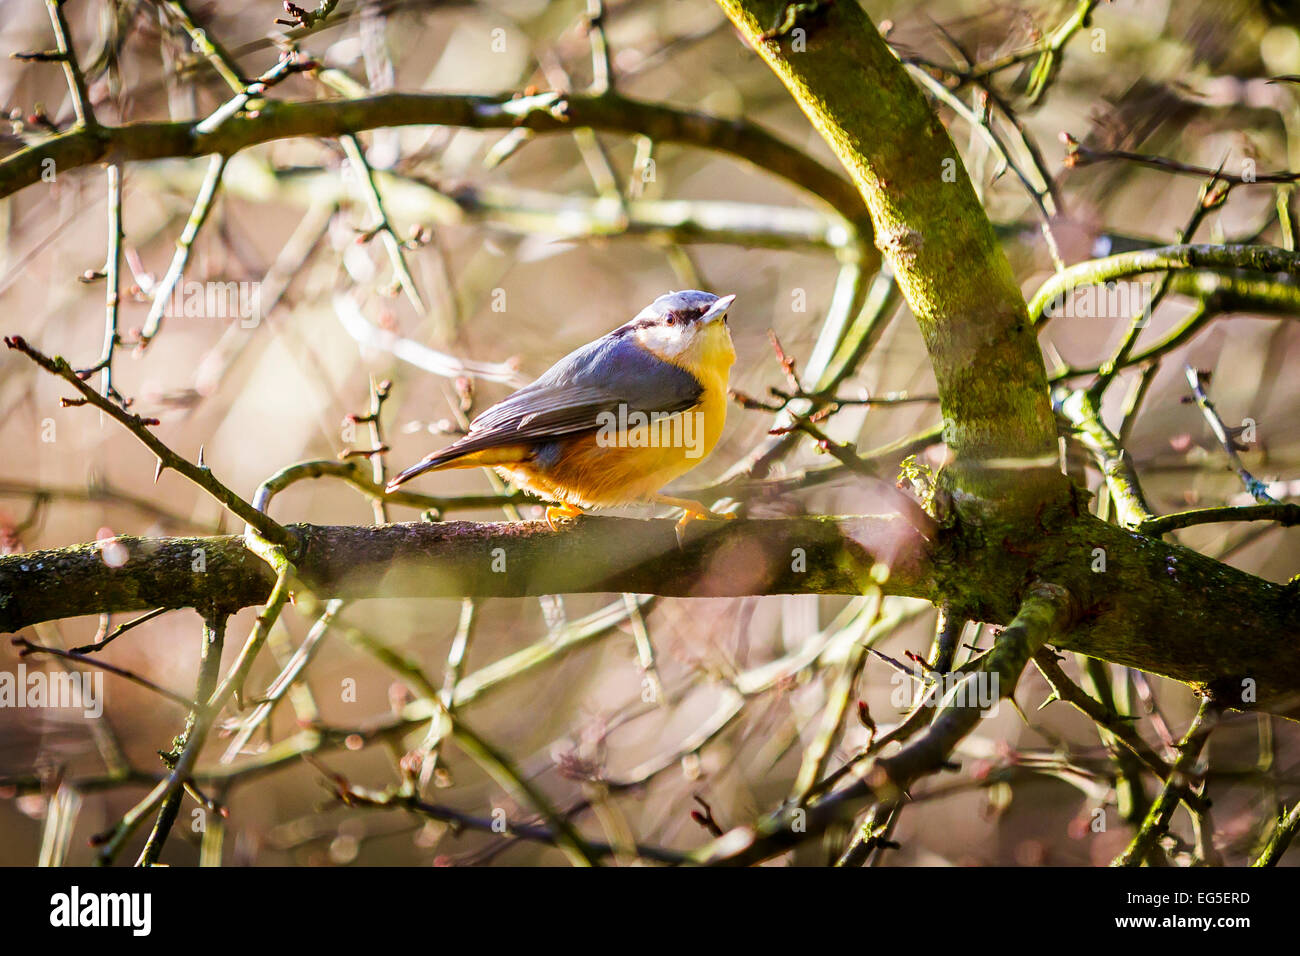 Nuthatch - British birds in trees in the West Midlands, England - Stock Image